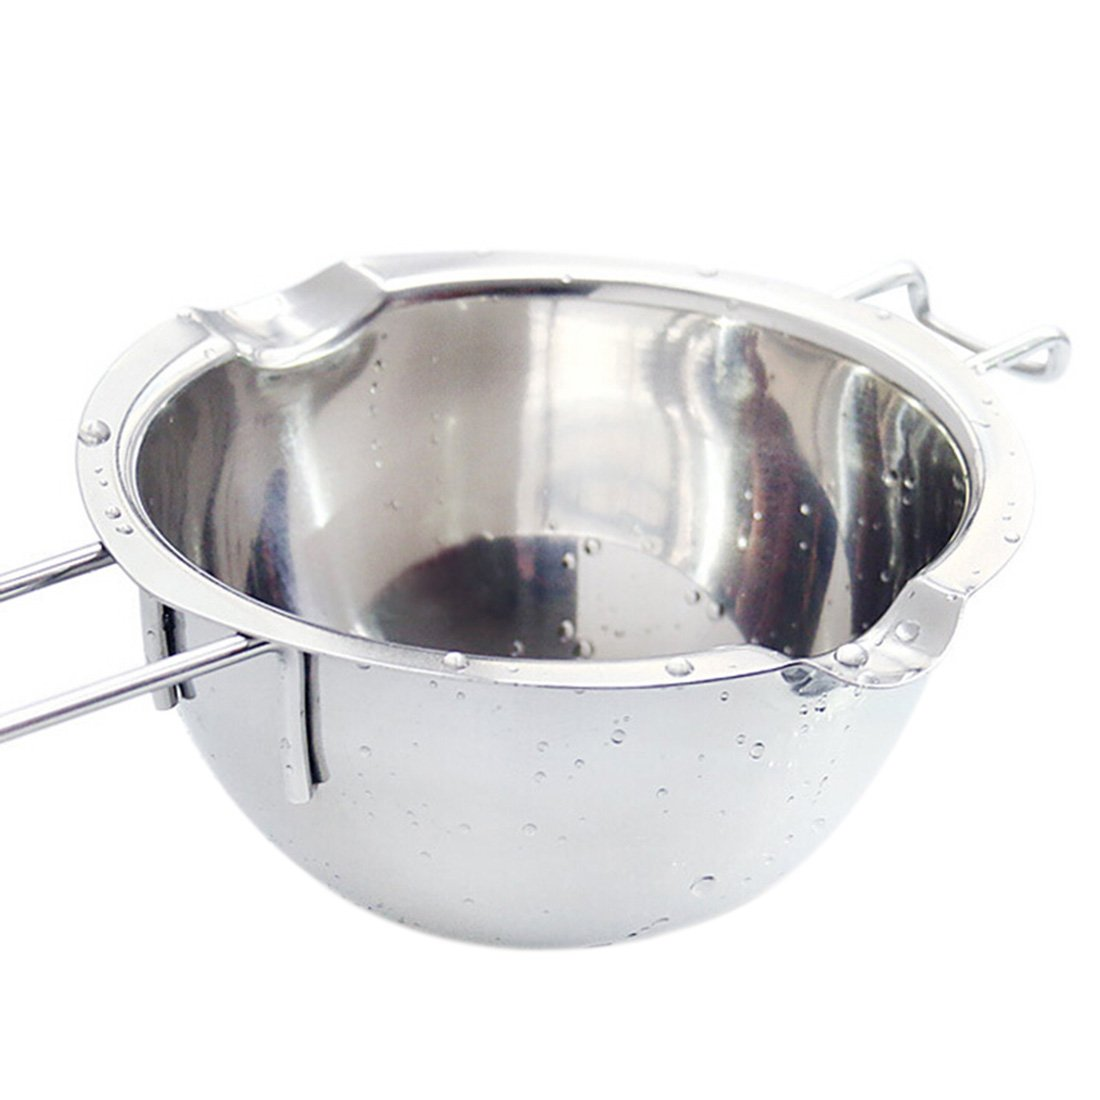 Beautylife77 Stainless Steel Melting Pot Baking Boiler Pan Baking Tools